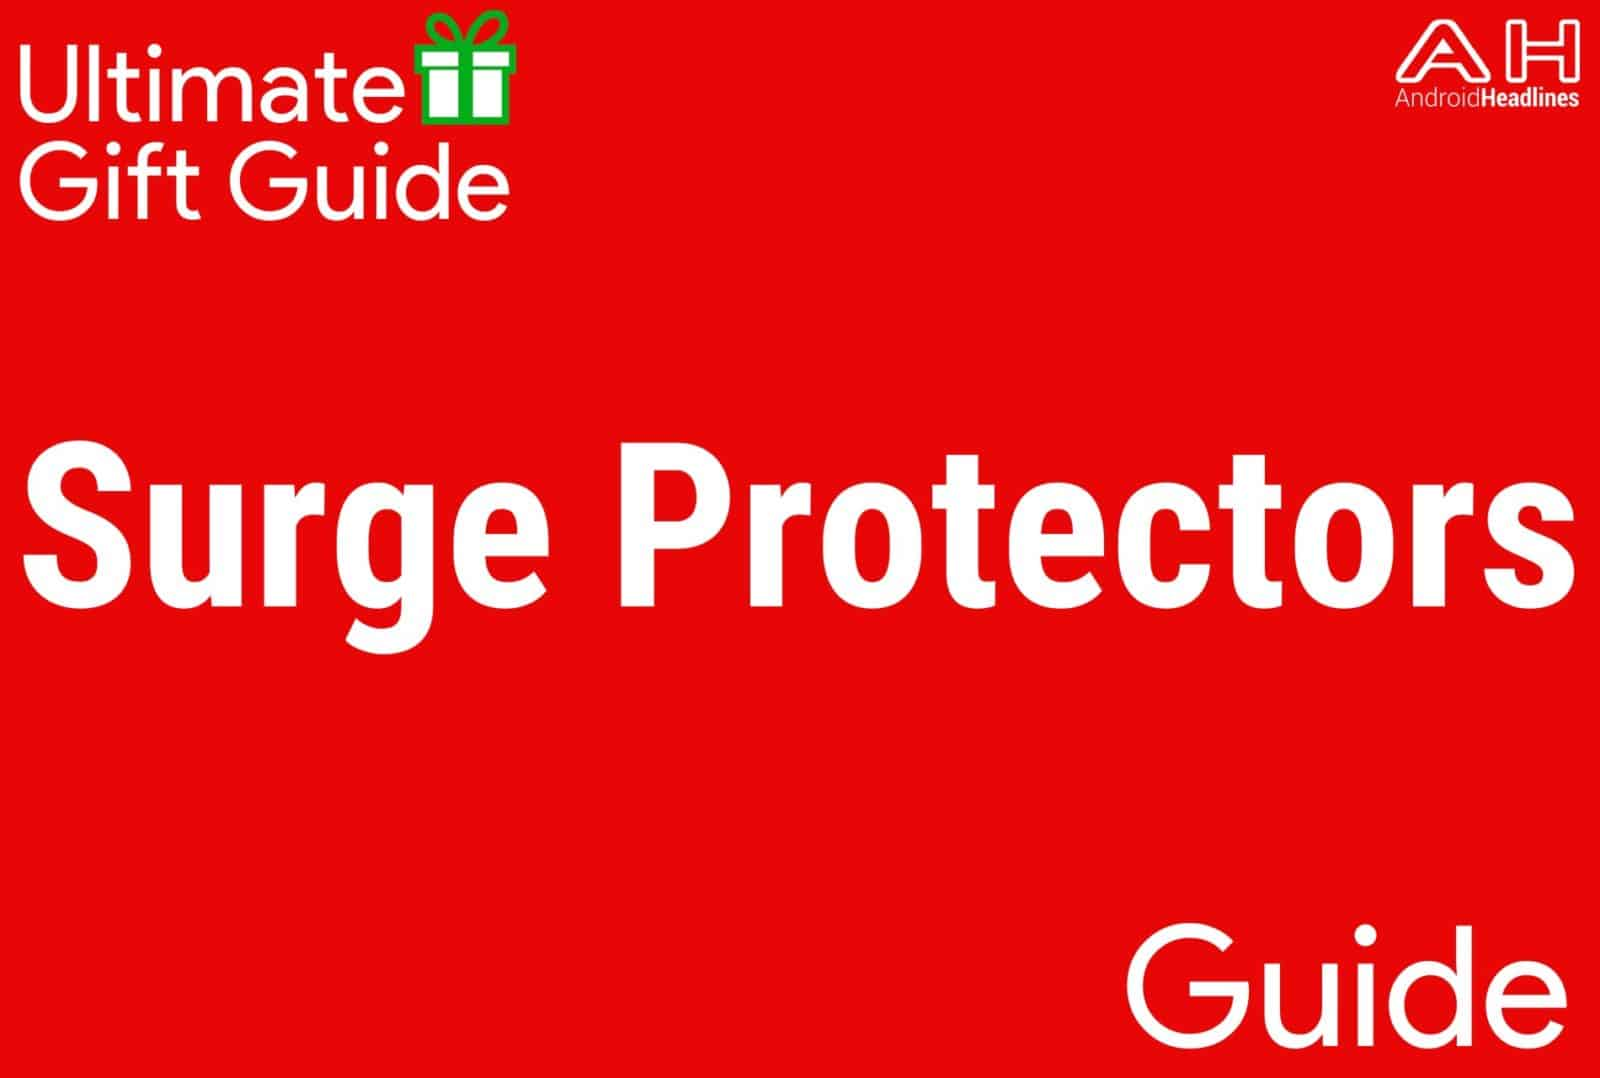 Surge Protectors - Gift Guide 2015